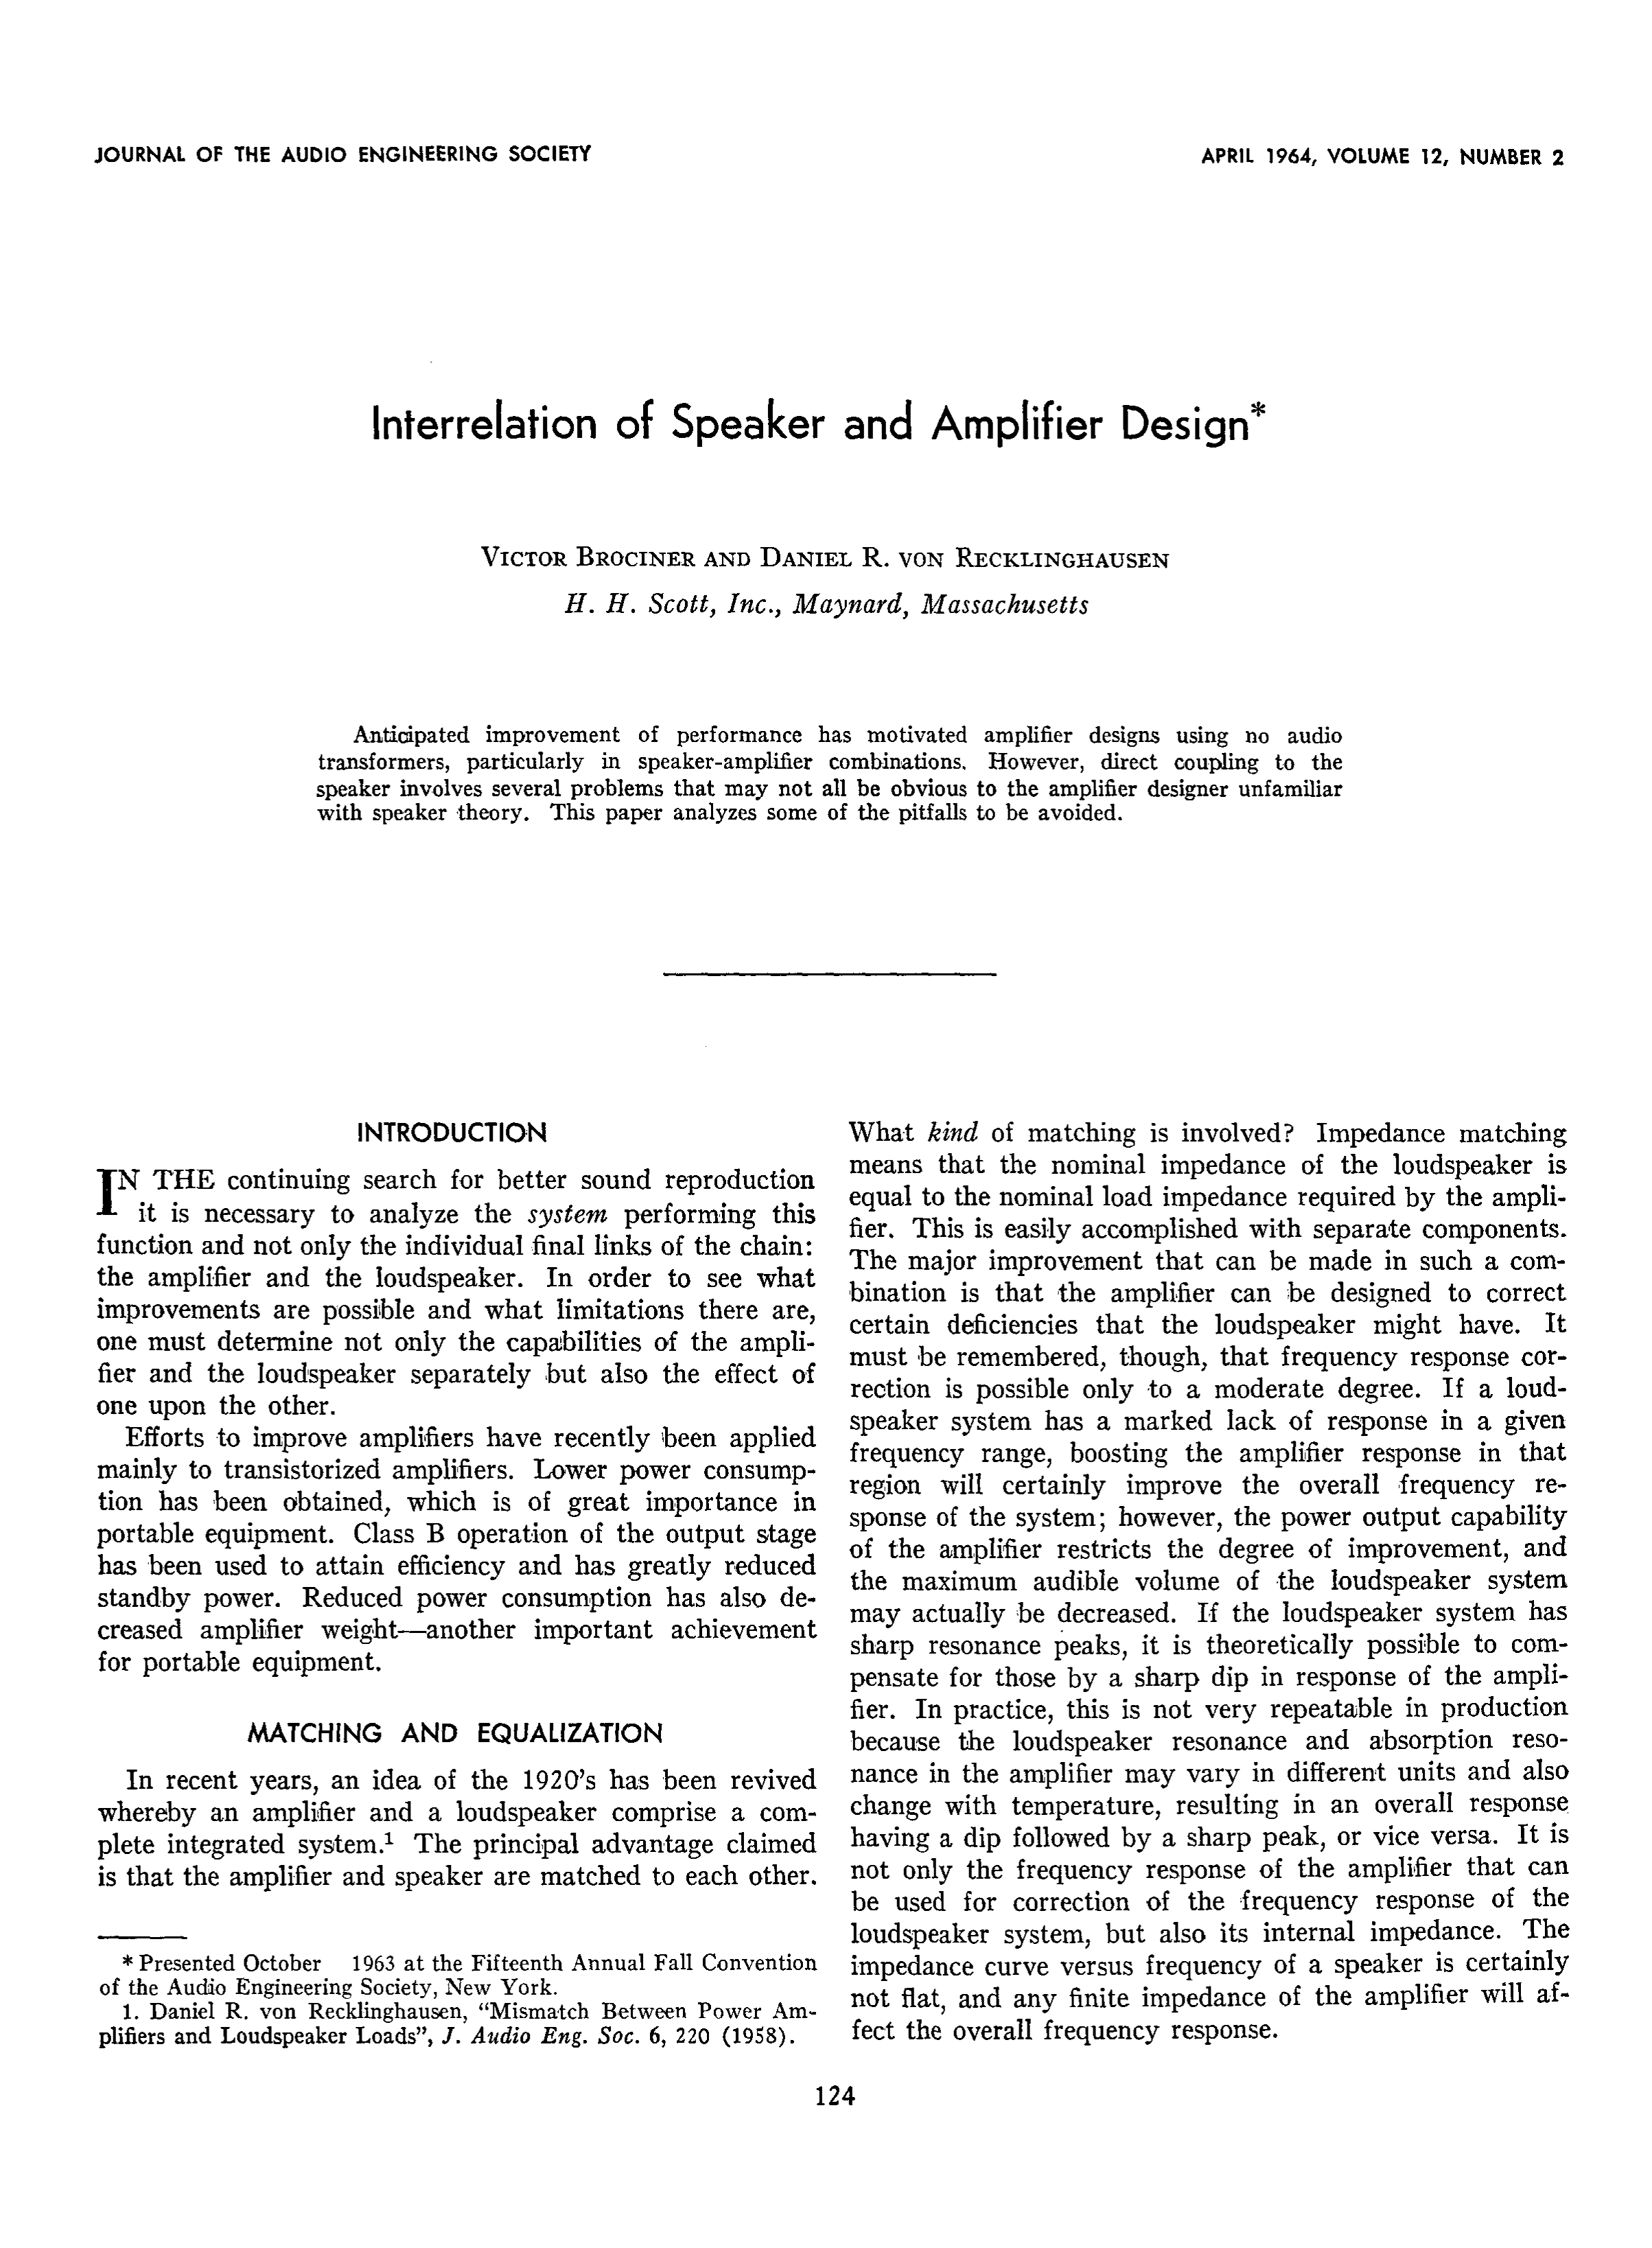 AES E-Library » Interrelation of Speaker and Amplifier Design